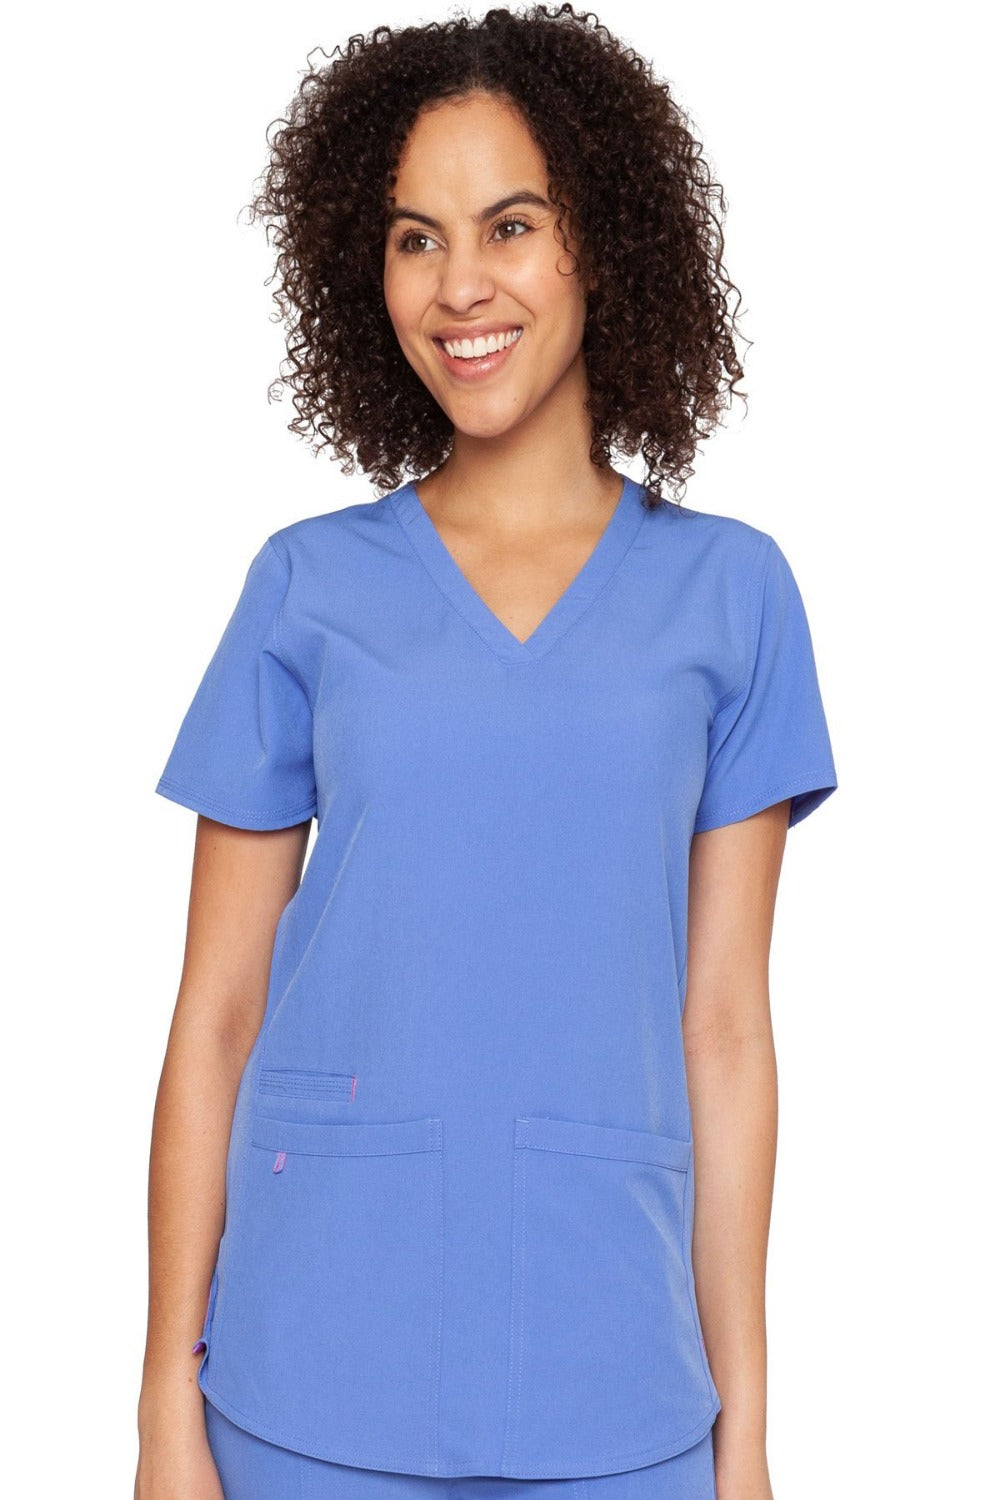 Med Couture Scrub Top Energy Serena Shirttail Hem V-neck Ceil - Parker's Clothing and Shoes